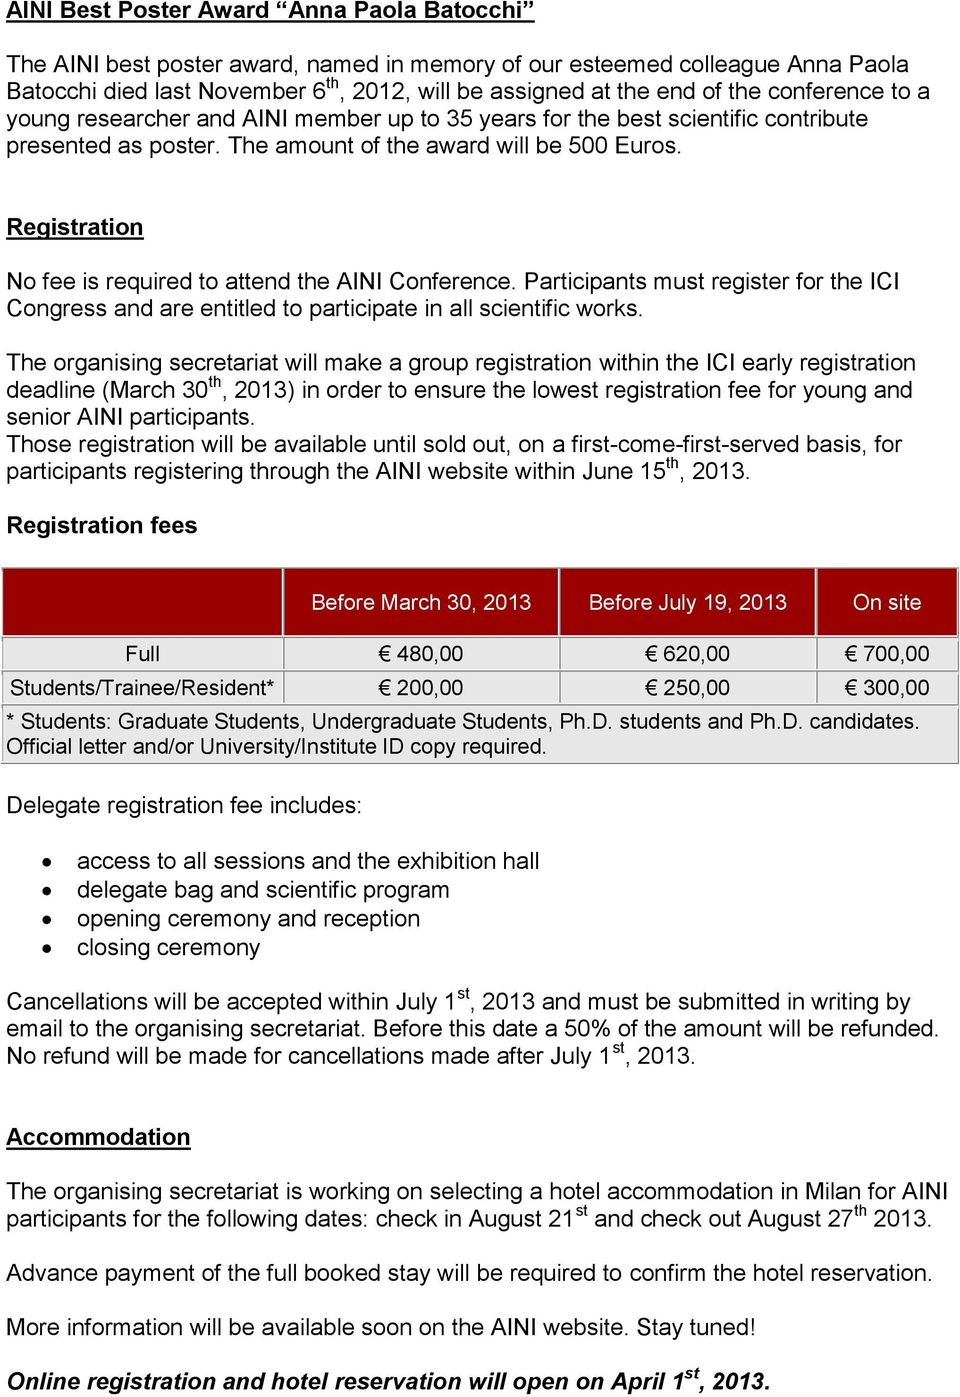 Registration No fee is required to attend the AINI Conference. Participants must register for the ICI Congress and are entitled to participate in all scientific works.